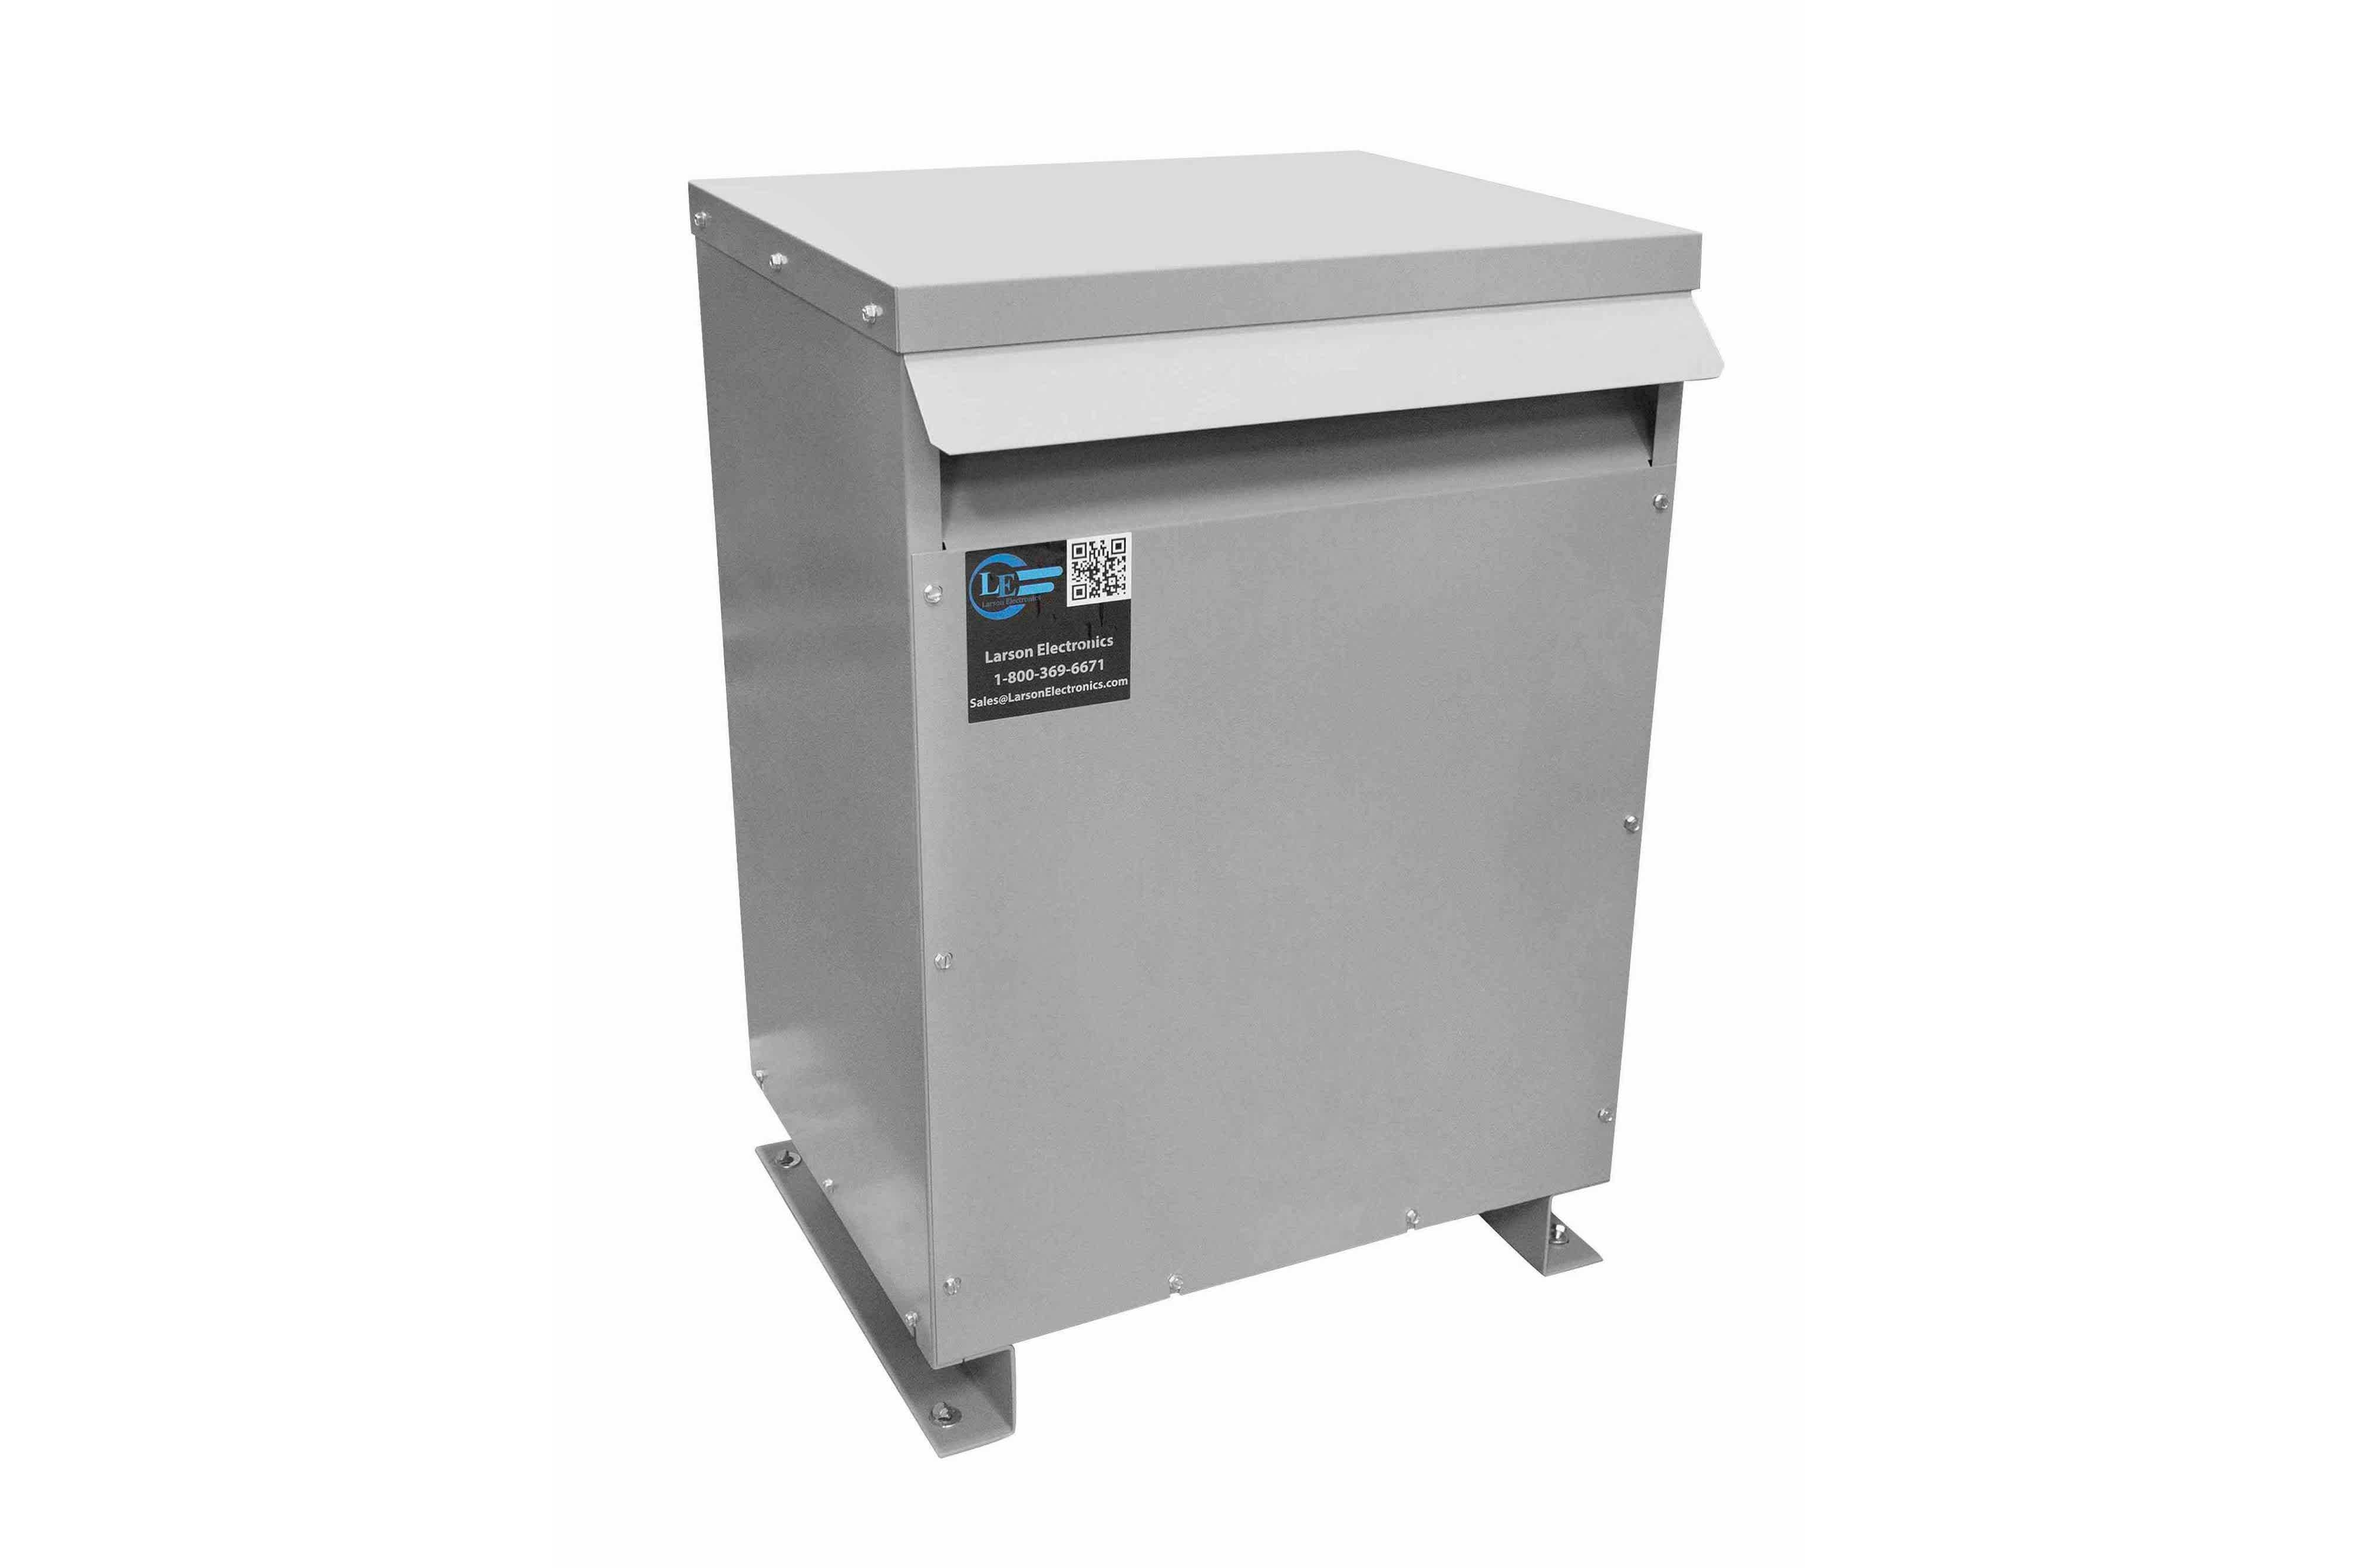 100 kVA 3PH Isolation Transformer, 400V Wye Primary, 208V Delta Secondary, N3R, Ventilated, 60 Hz